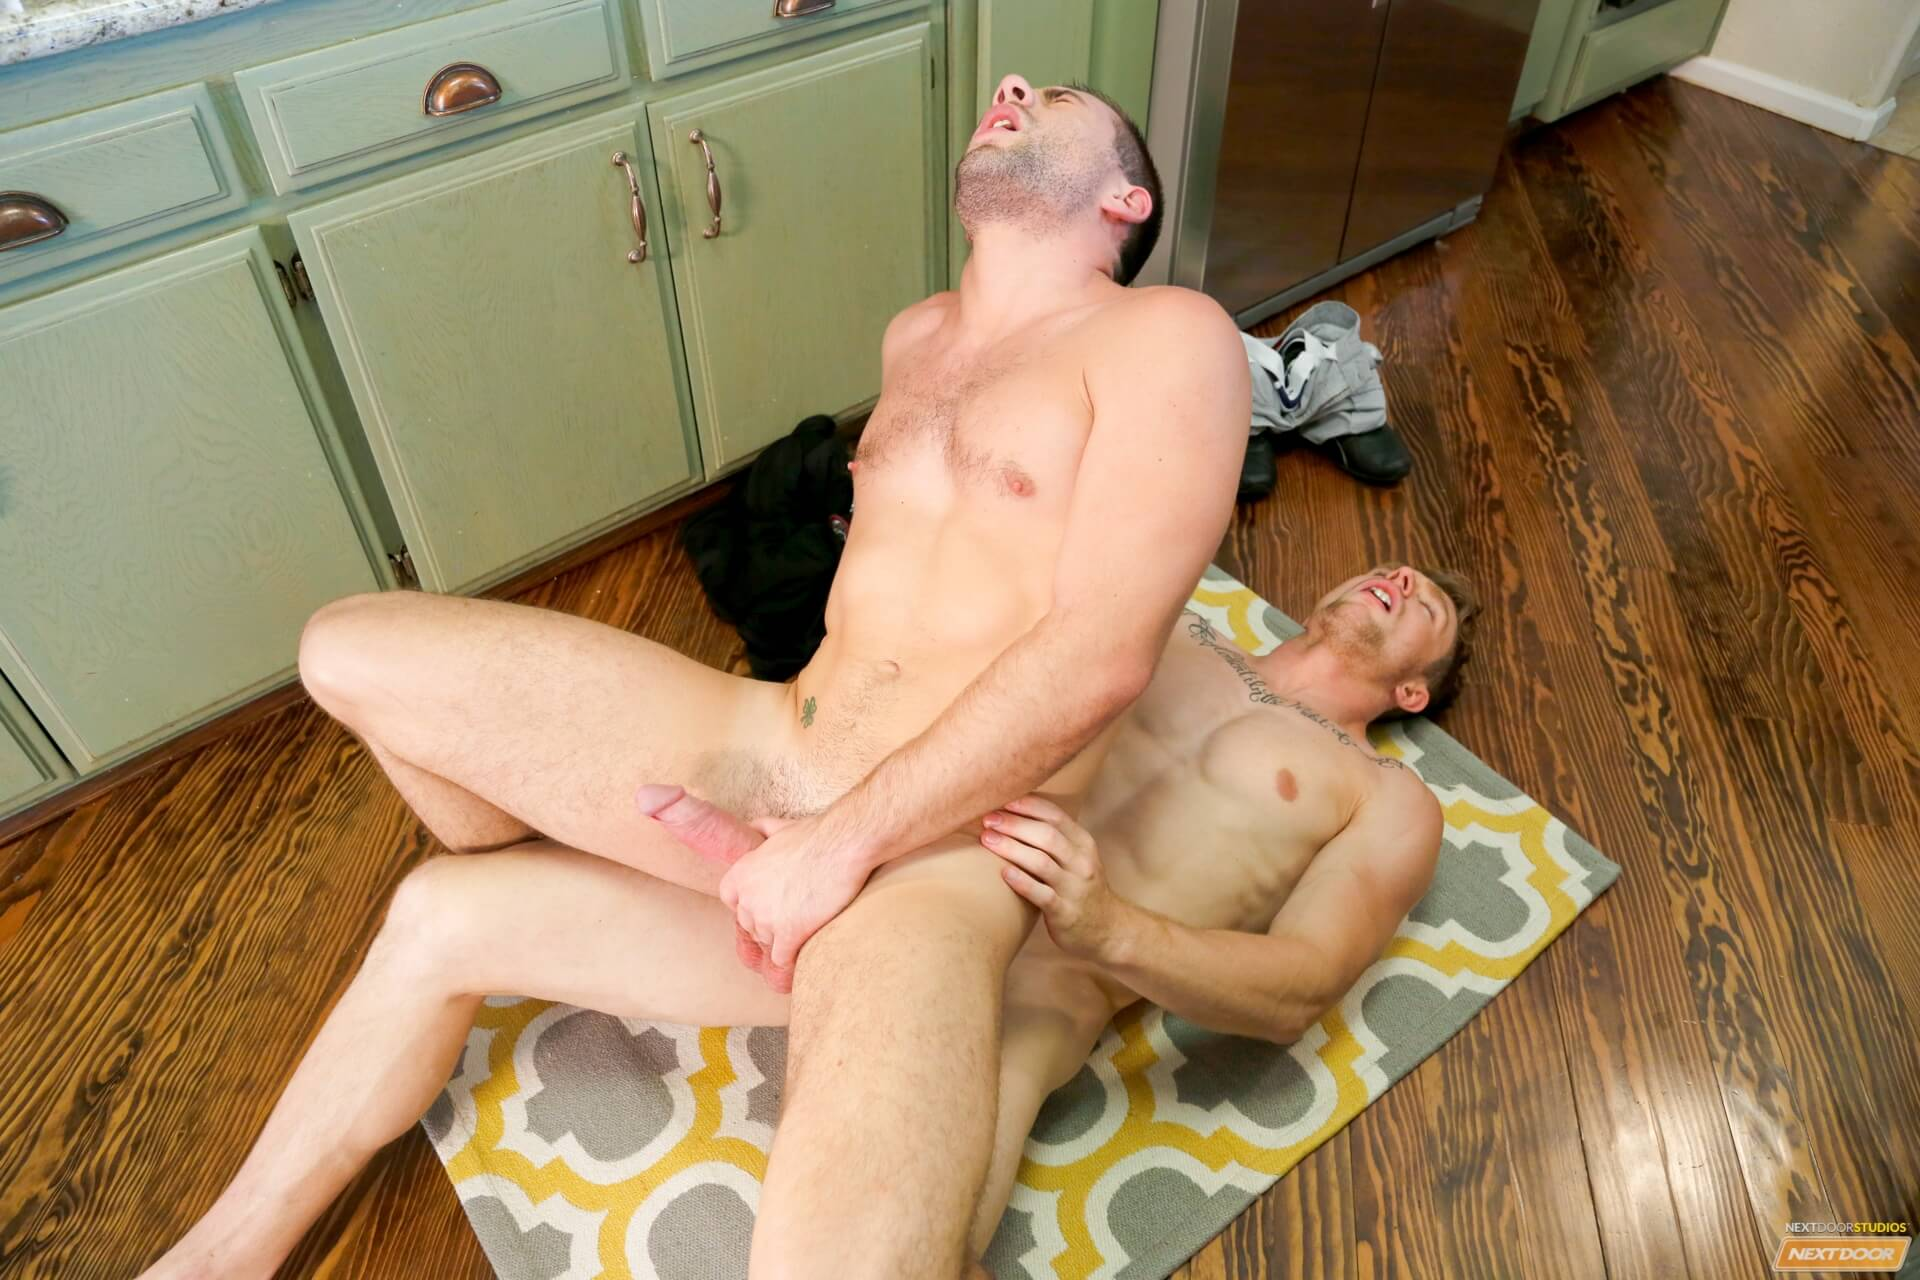 next door buddies porn problems dylan knight markie more gay porn blog image 12